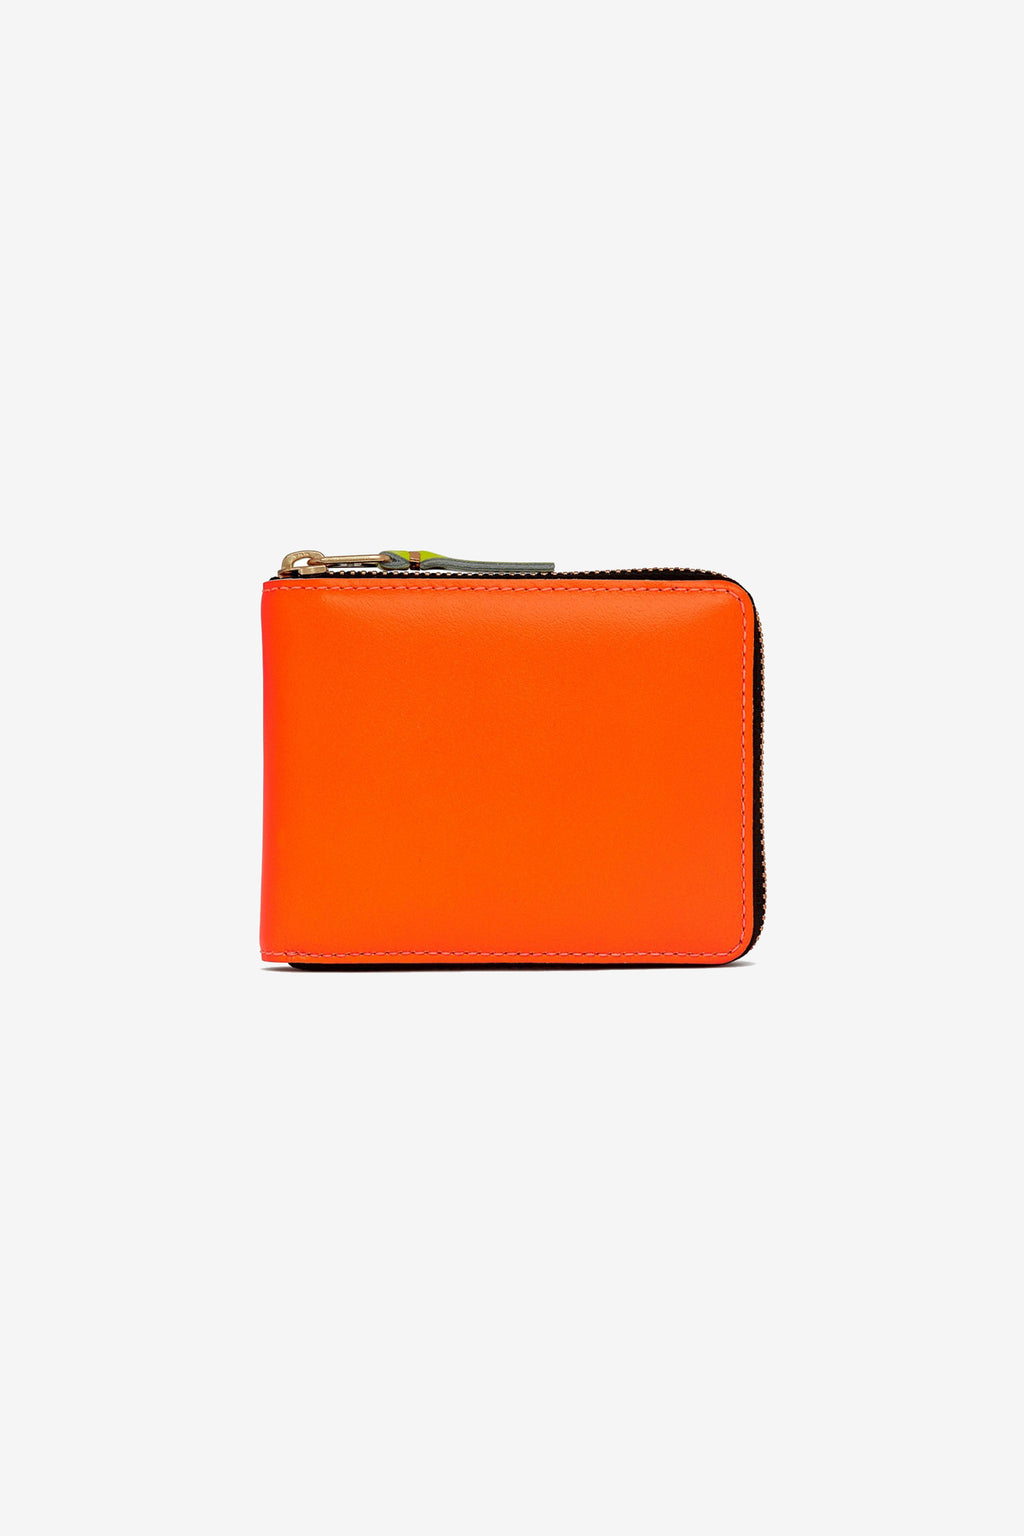 Comme Des Garcons Wallet Super Fluo Light Orange/Pink SA7100F